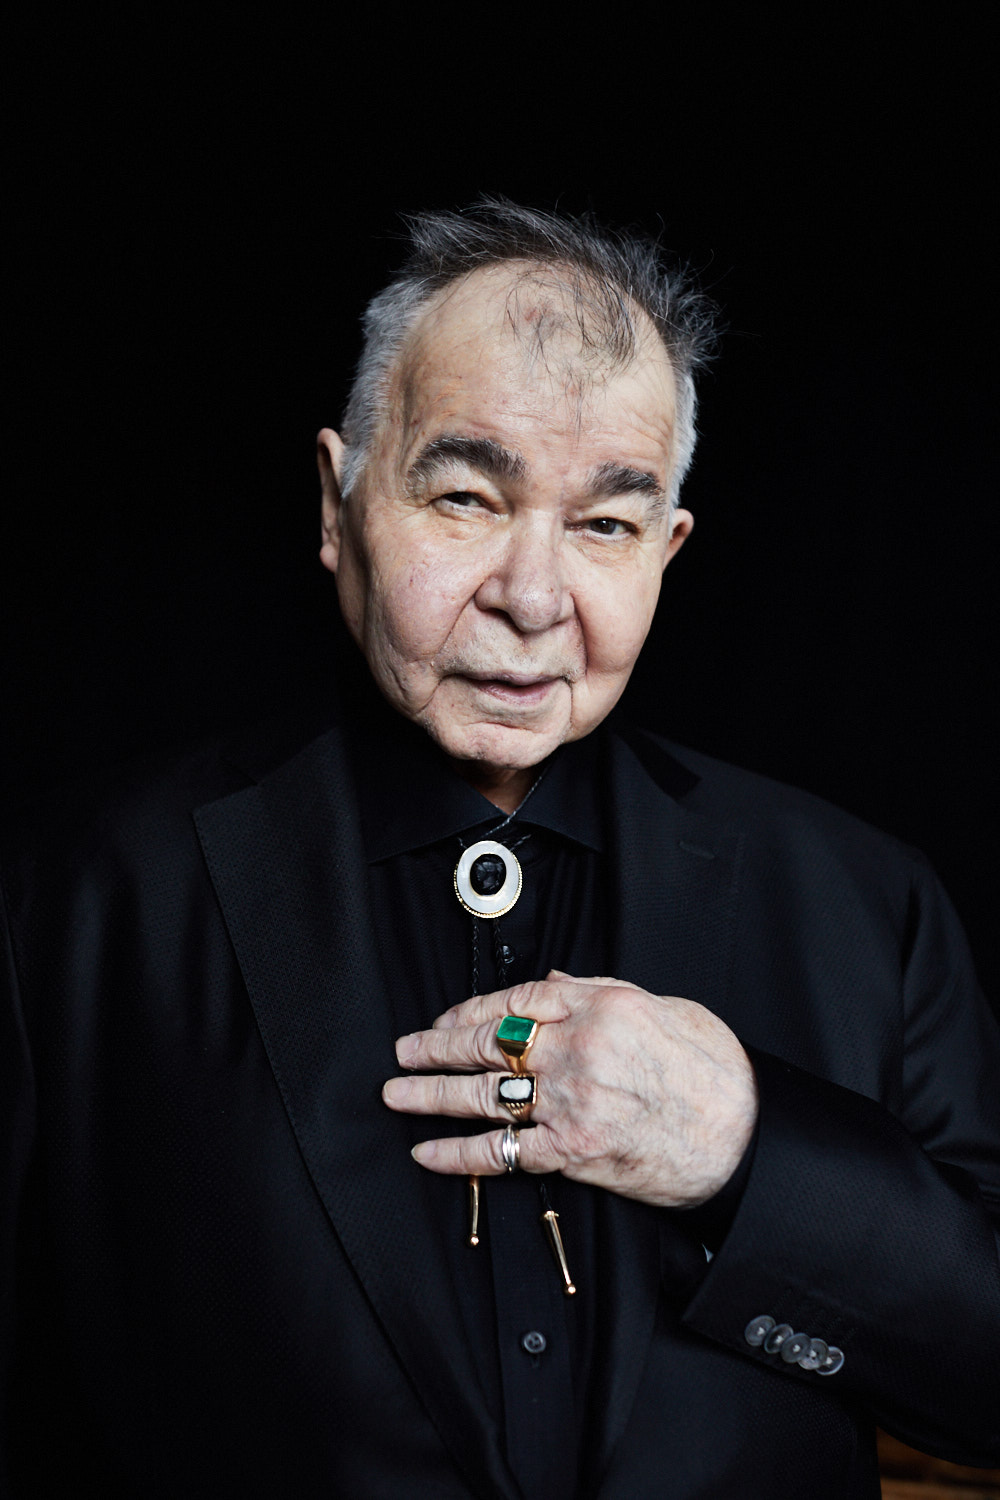 The Ballad of John Prine